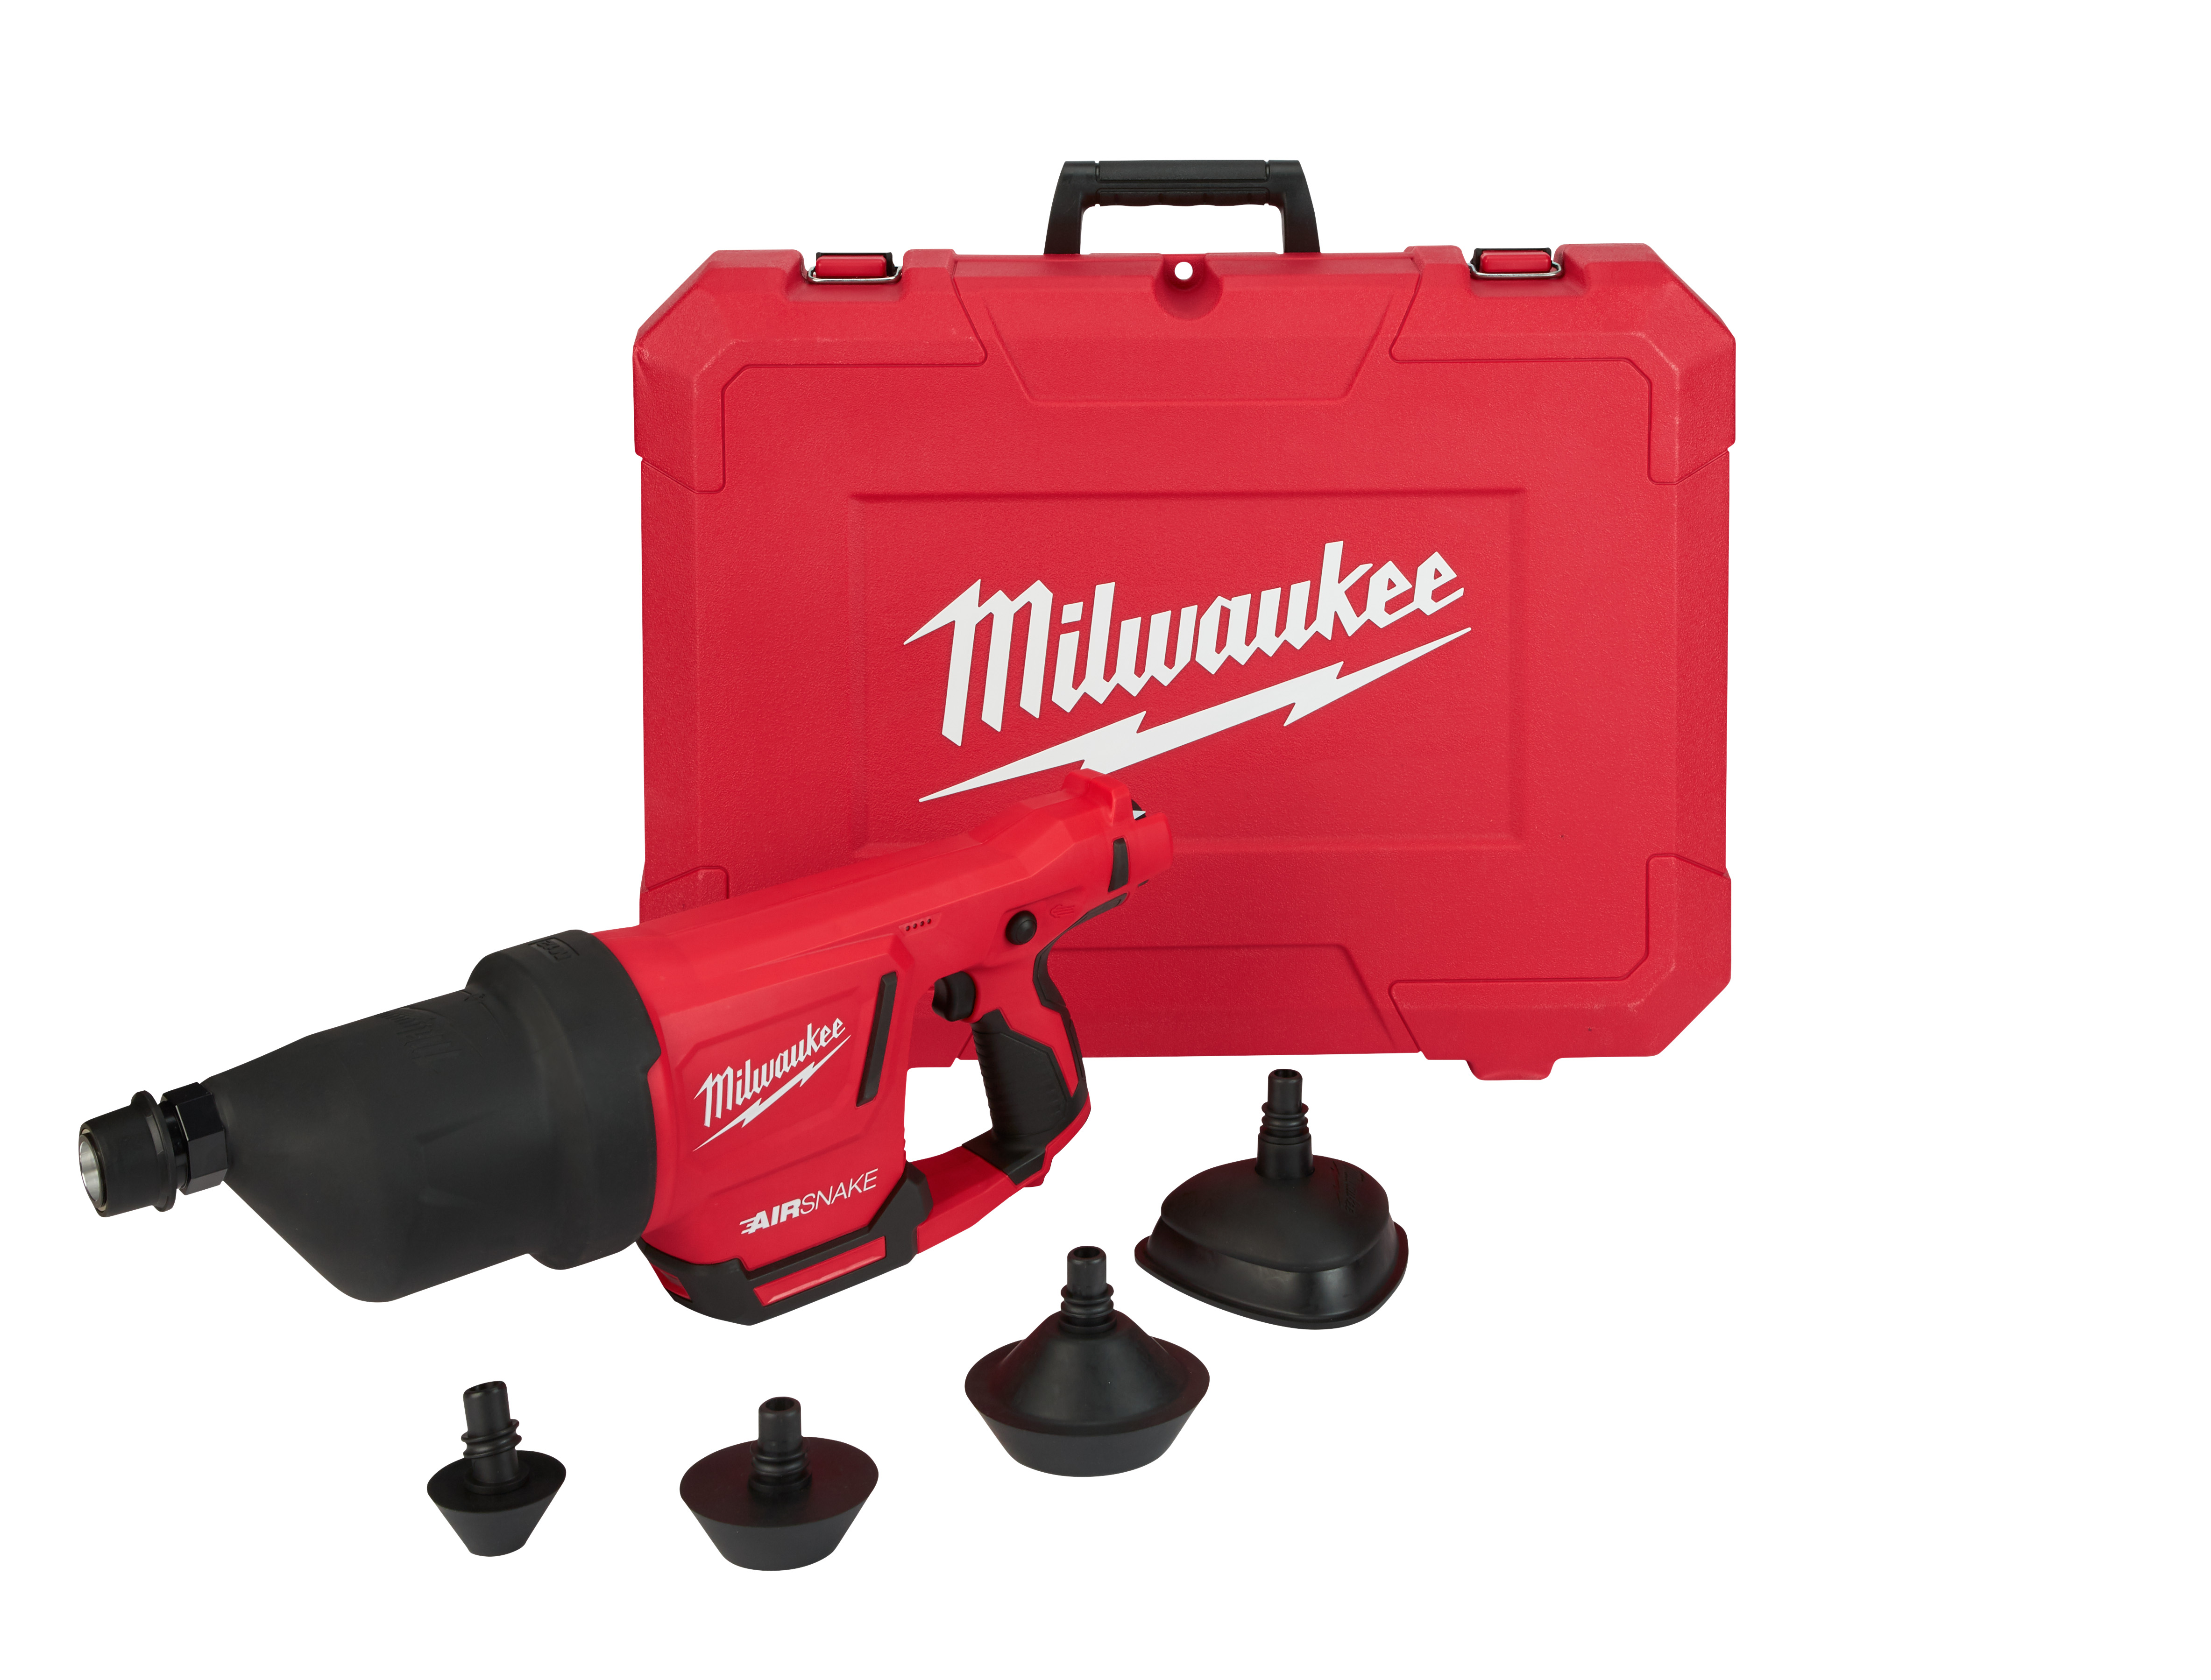 Milwaukee® 2572A-20 M12™ AIRSNAKE™ Cordless Drain Cleaning Air Gun, 1 to 4 in Drain Line, 35 ft Max Run, 12 VDC, Plastic Housing, Tool Only